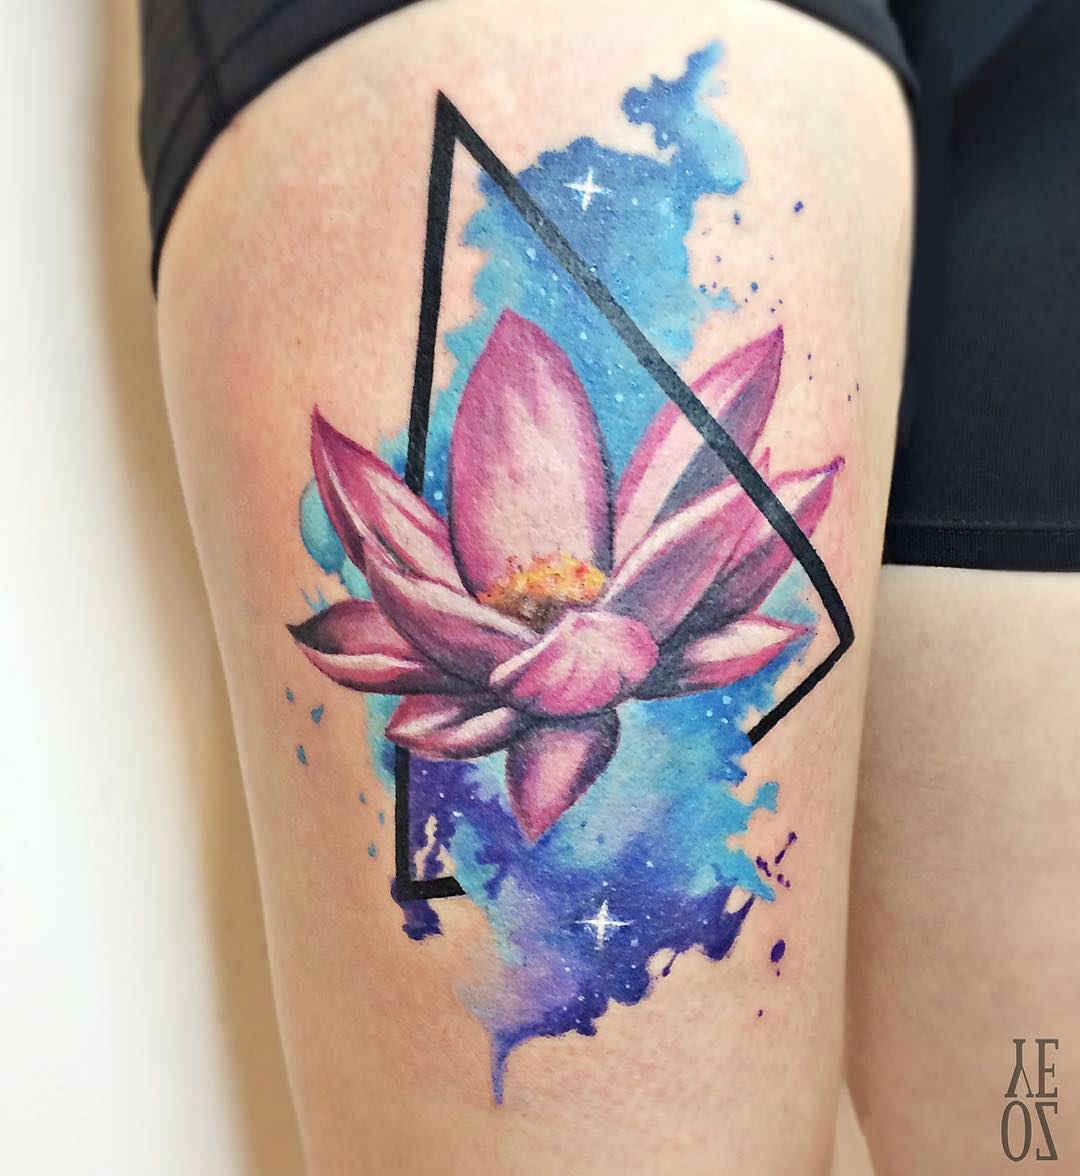 2017 06 lotus flower tattoo - Thigh Tattoo Lotus Flower Again The Triangle Lotus Flower Is Beautiful Though